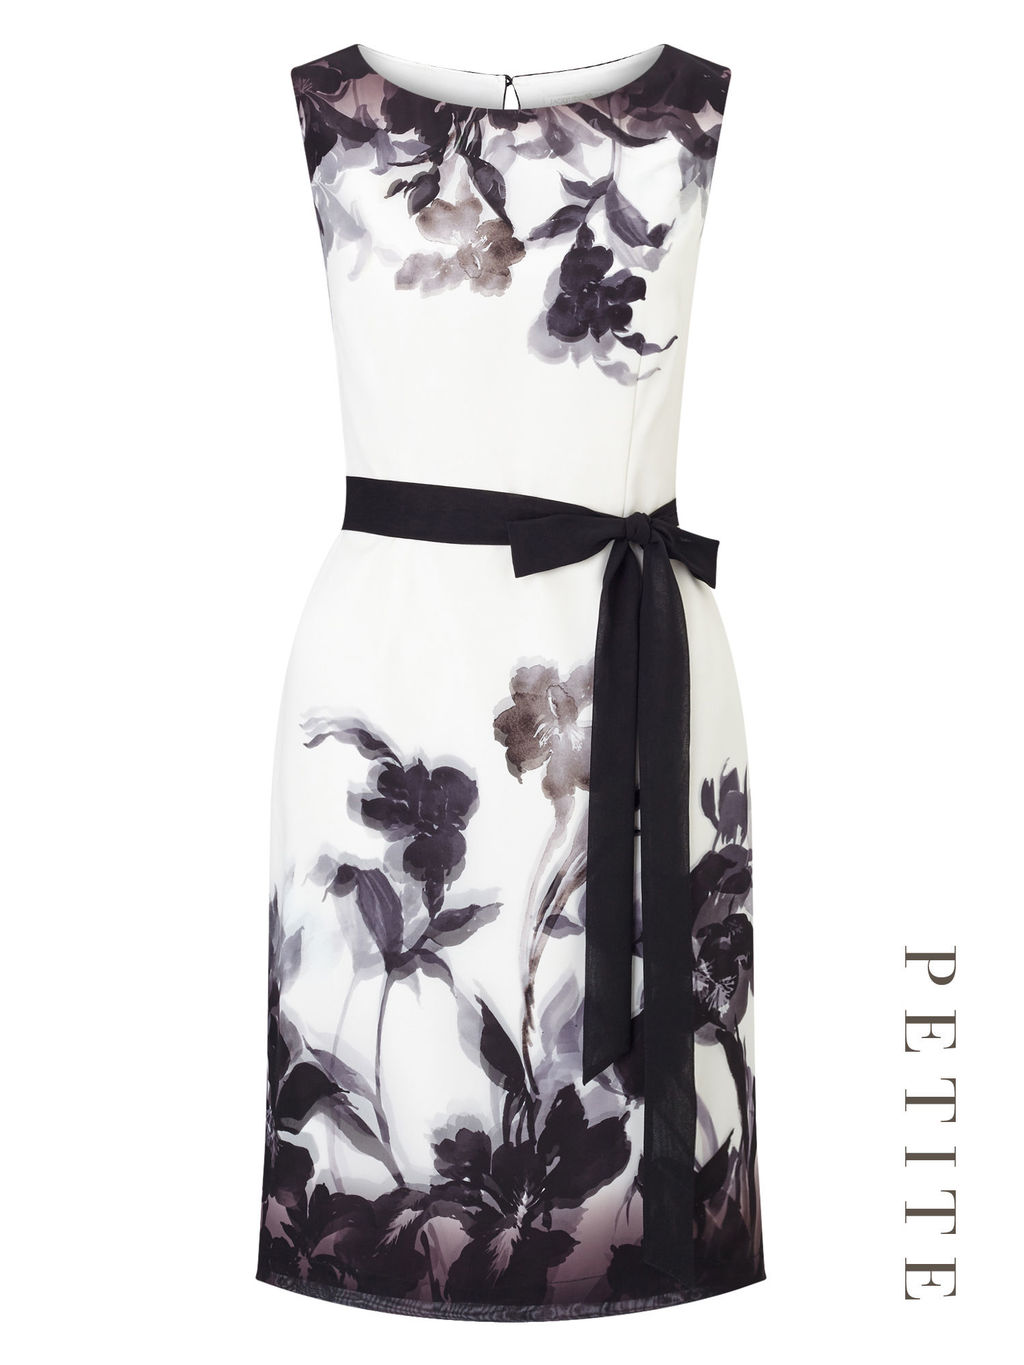 Petite Shadow Floral Dress - style: shift; length: mid thigh; neckline: round neck; fit: tailored/fitted; sleeve style: sleeveless; predominant colour: ivory/cream; secondary colour: black; fibres: polyester/polyamide - 100%; occasions: occasion; sleeve length: sleeveless; trends: monochrome; pattern type: fabric; pattern: florals; texture group: woven light midweight; season: a/w 2016; wardrobe: event